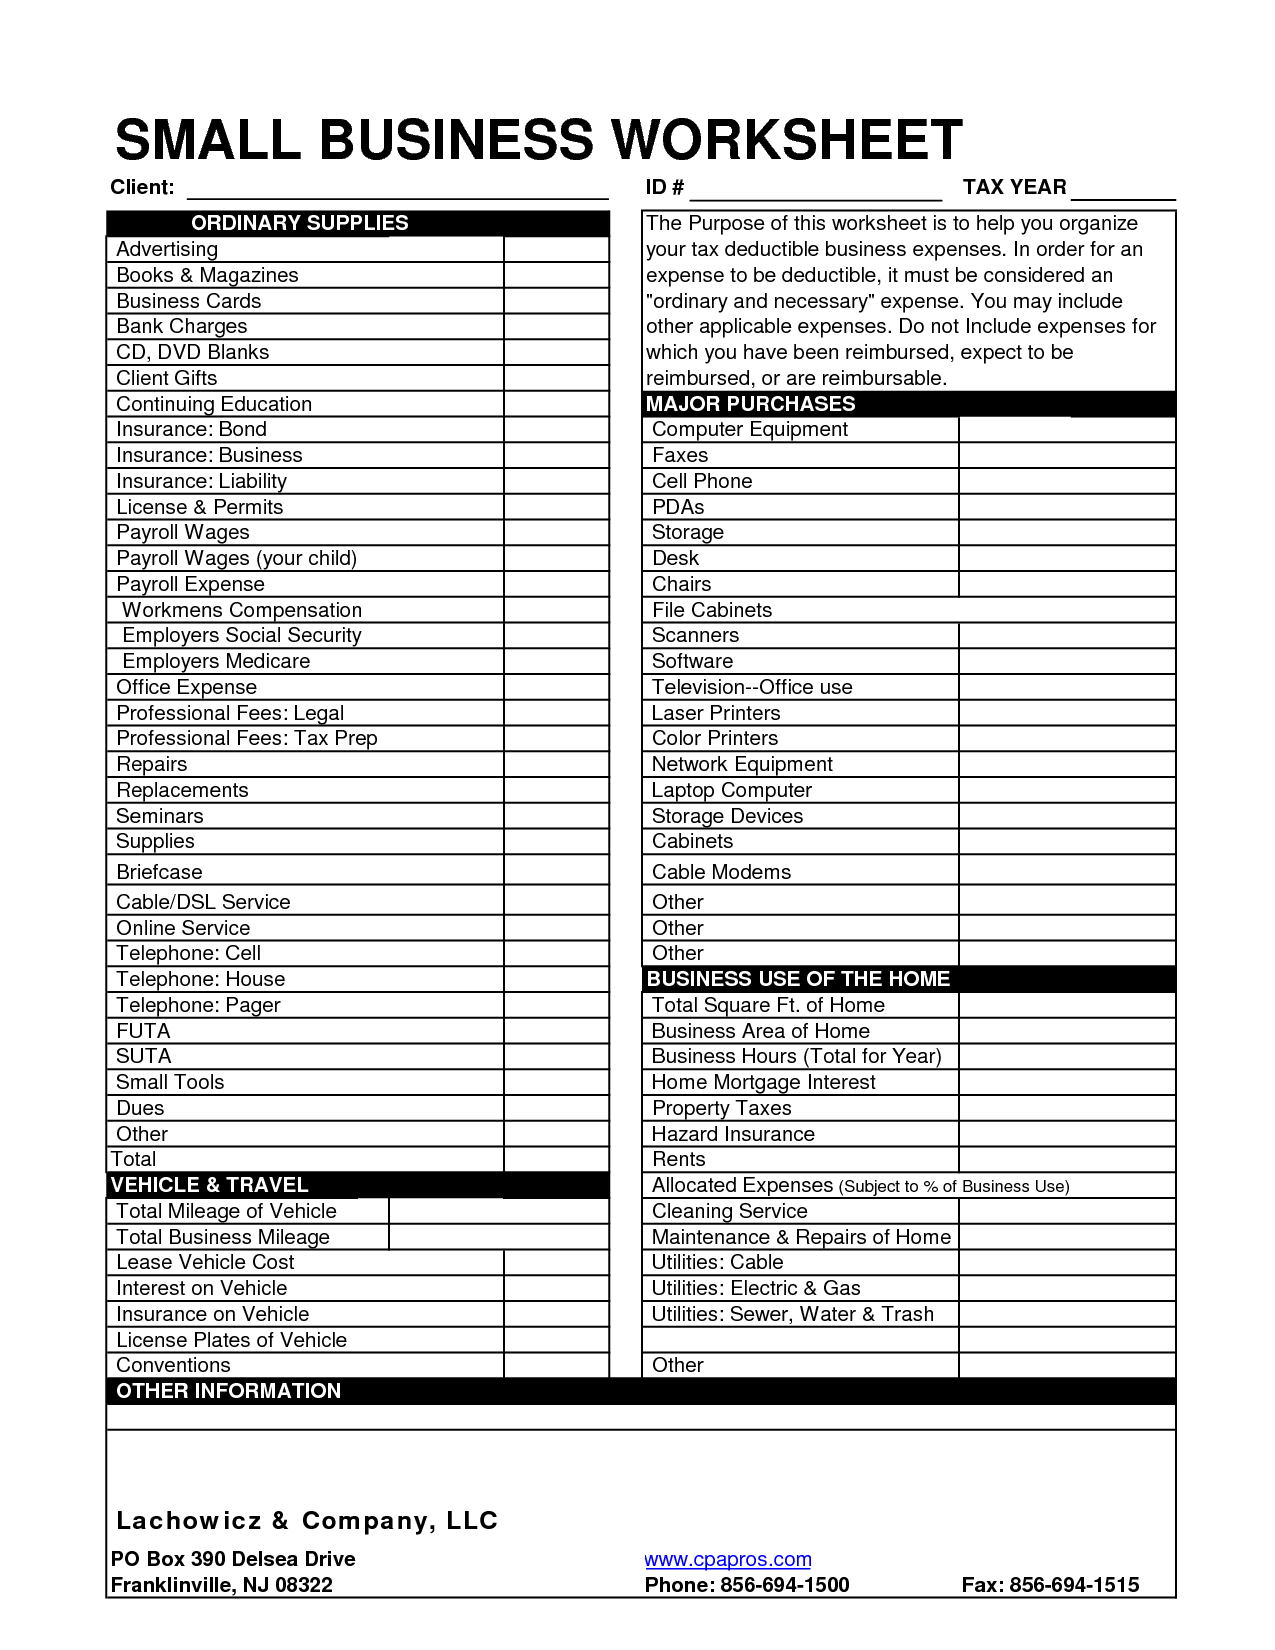 Clothing Donation Tax Deduction Worksheet and Collection Of Tax Deductions Worksheet Cockpito